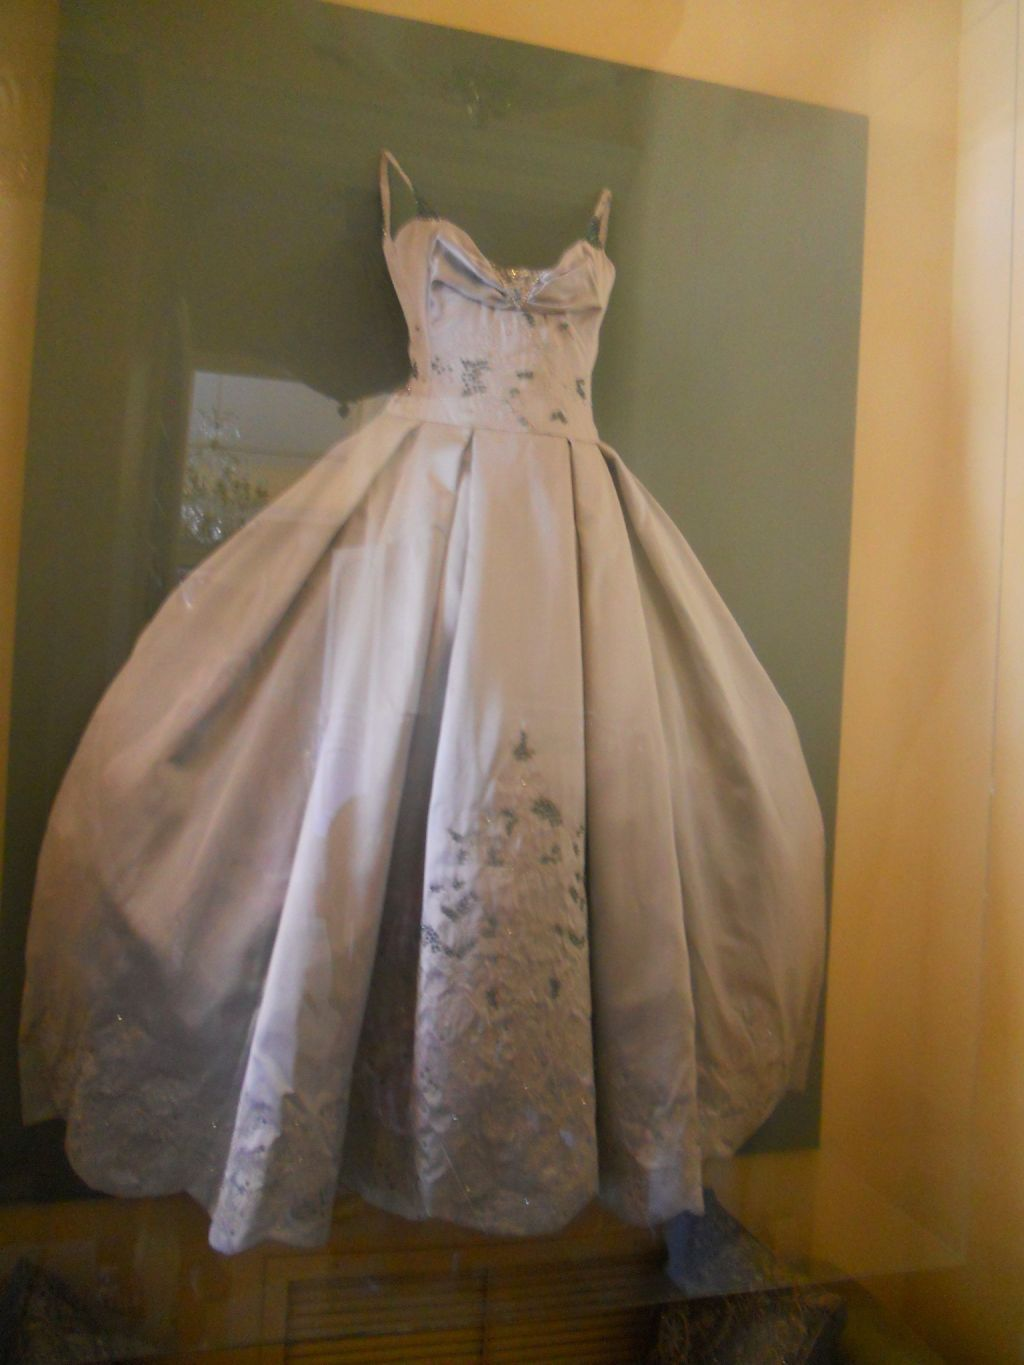 Put your wedding dress behind glass. For those who have huge closets, why not put your dress, veil, shoes, etc. into a shadow-box and put it on display. Imagine getting ready each day and getting to see your beautiful gown in a protective glass case in your walk-in-closet or vanity area.